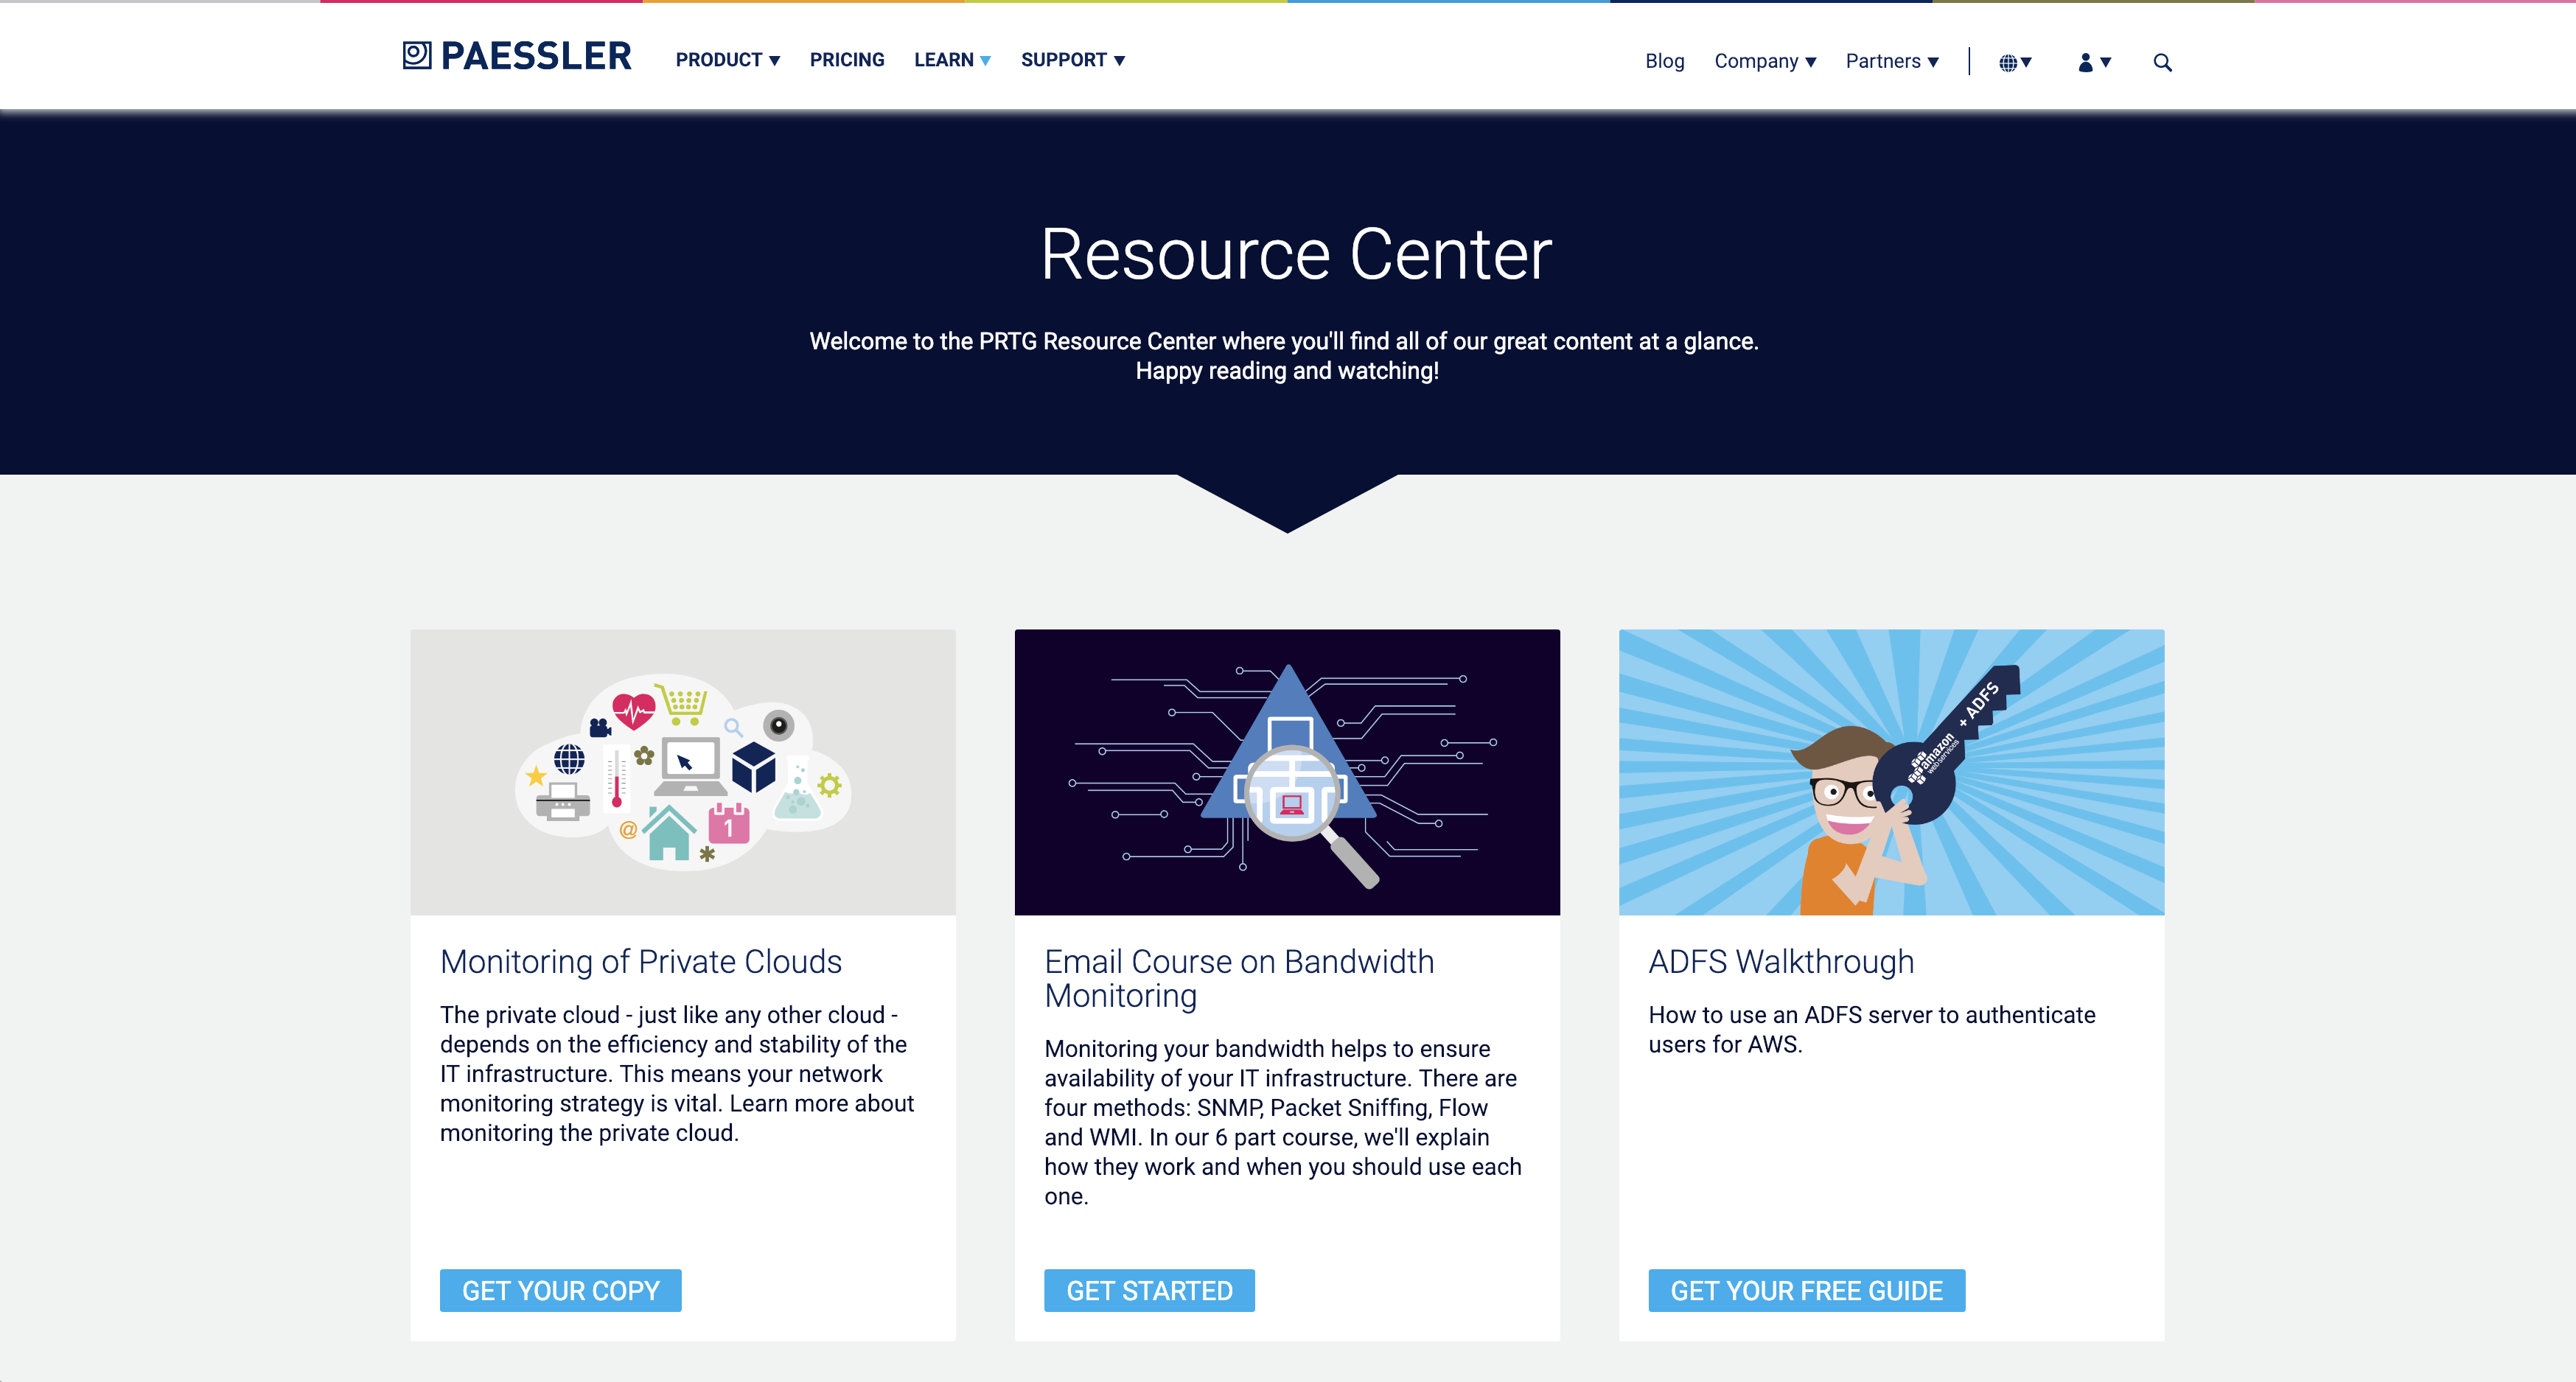 PRTG Resource Center